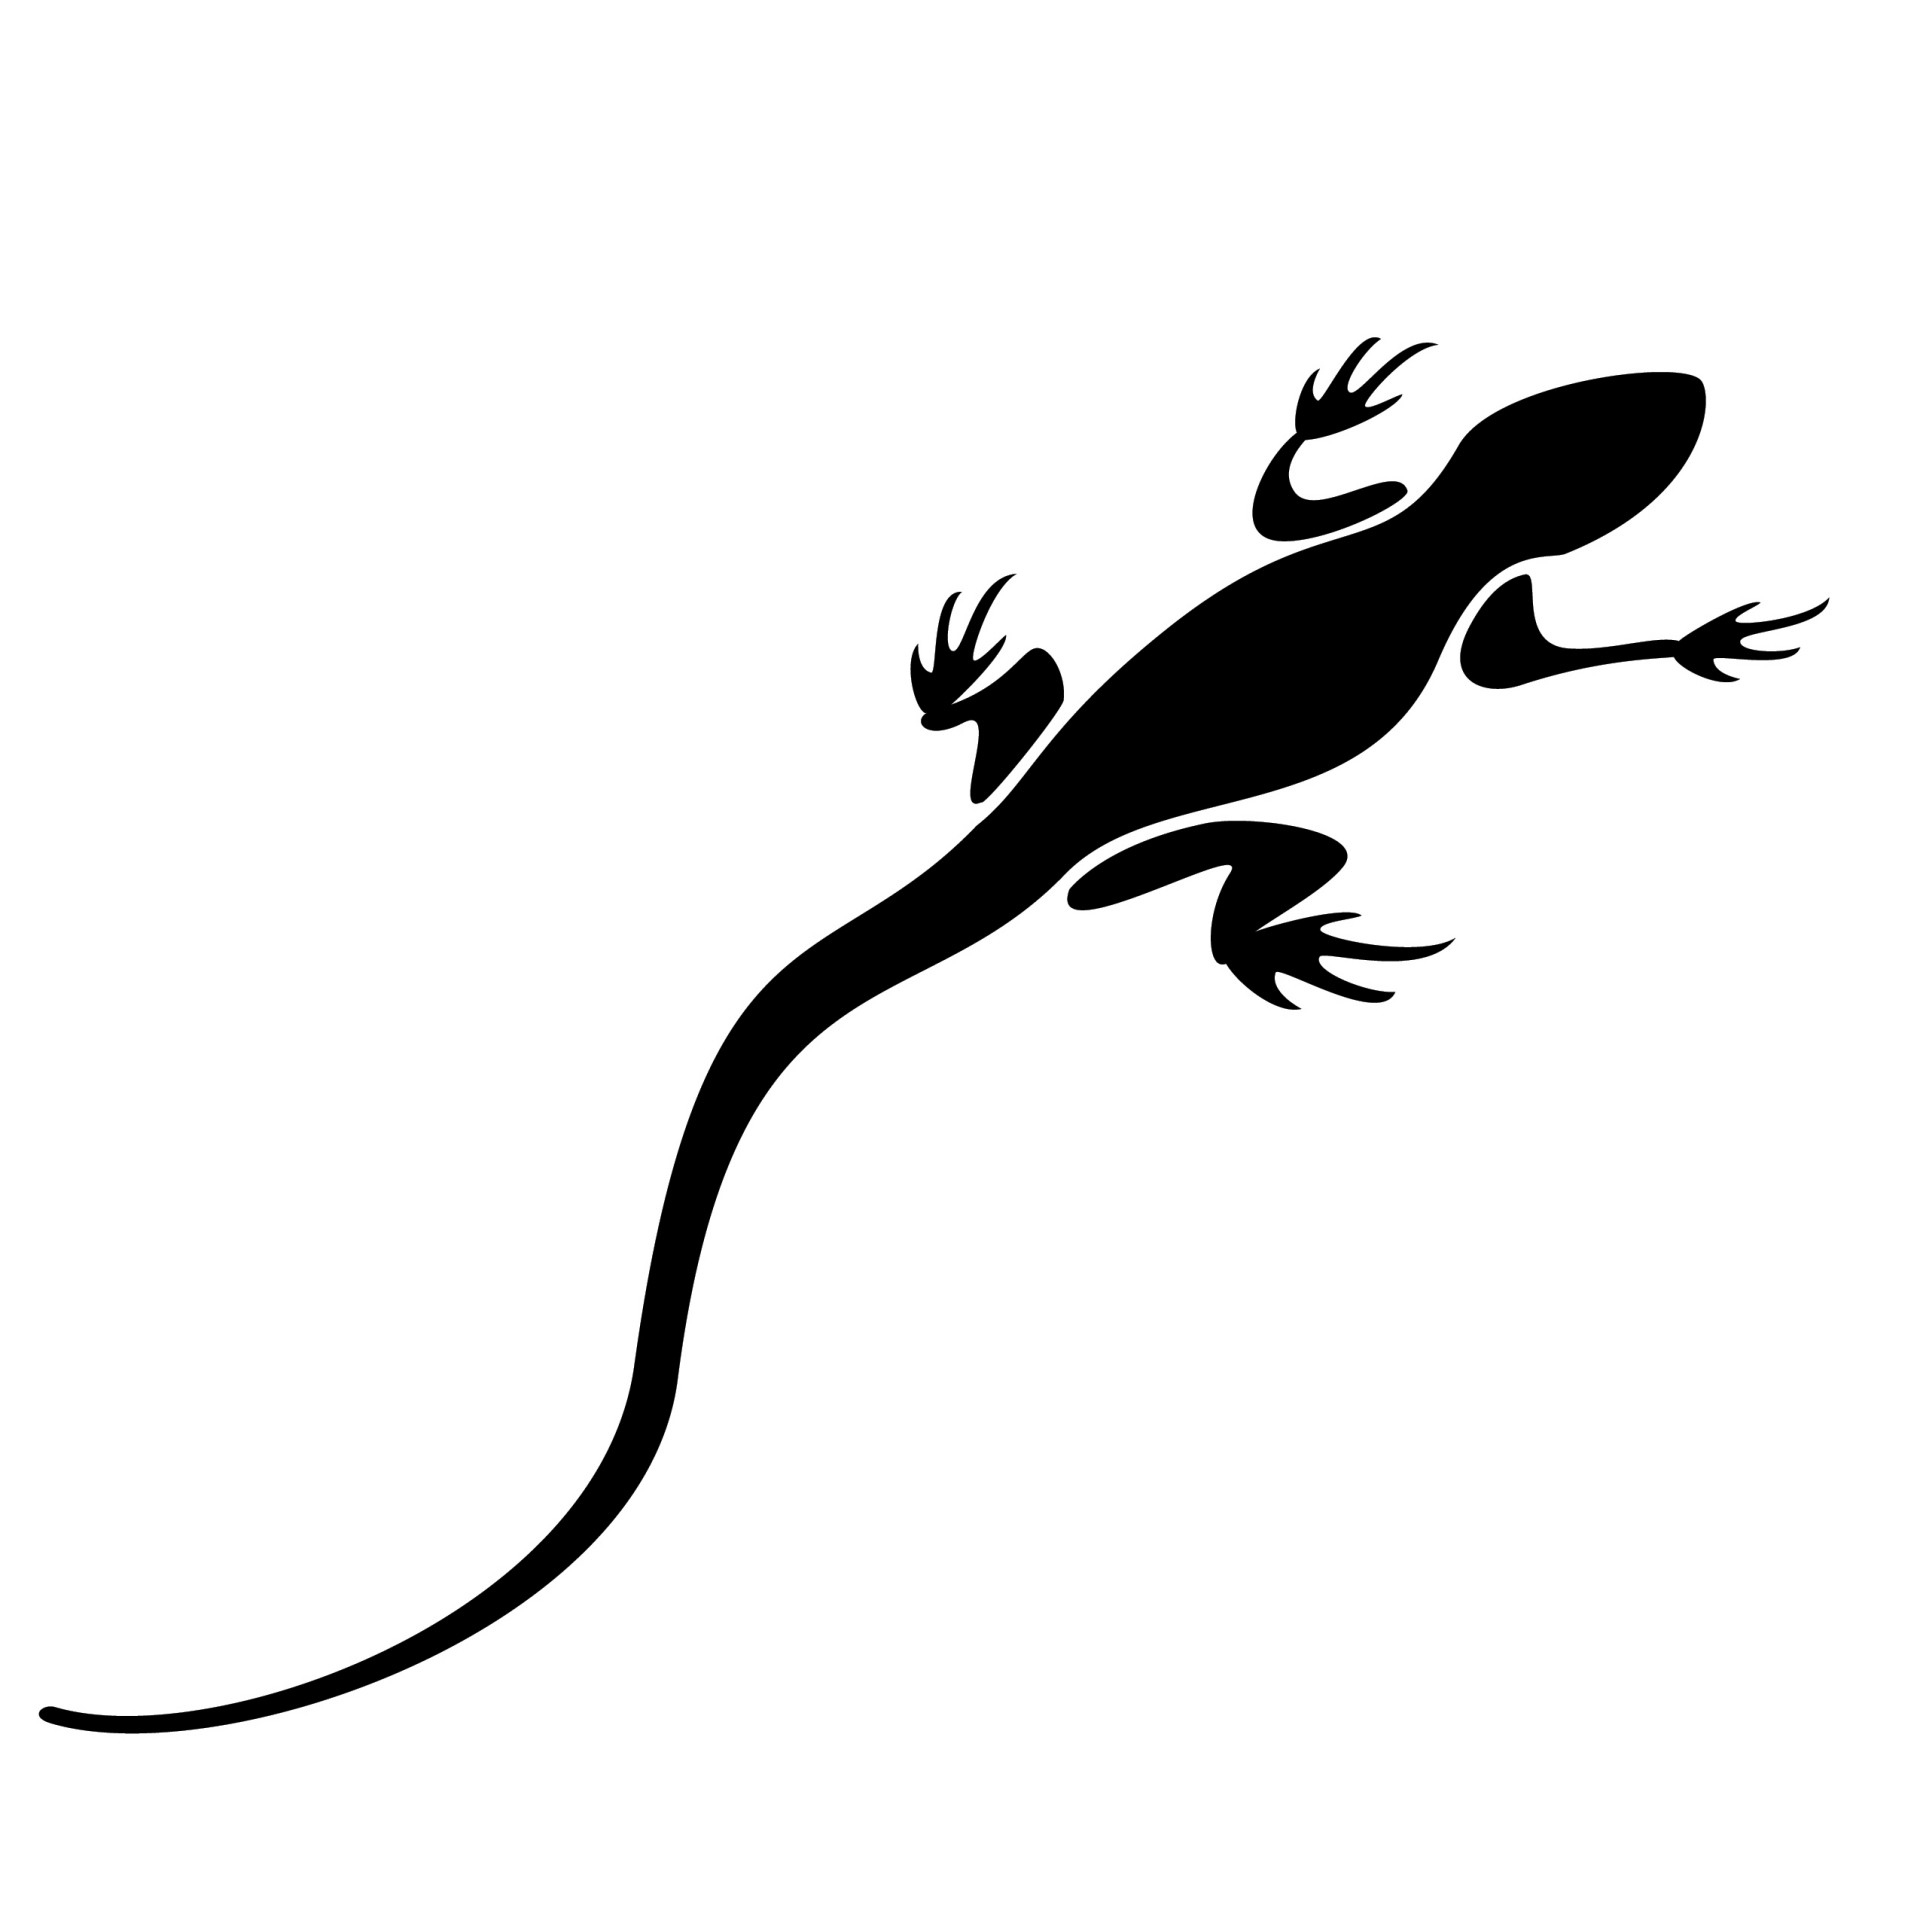 1920x1920 Lizard Black Silhouette Free Stock Photo